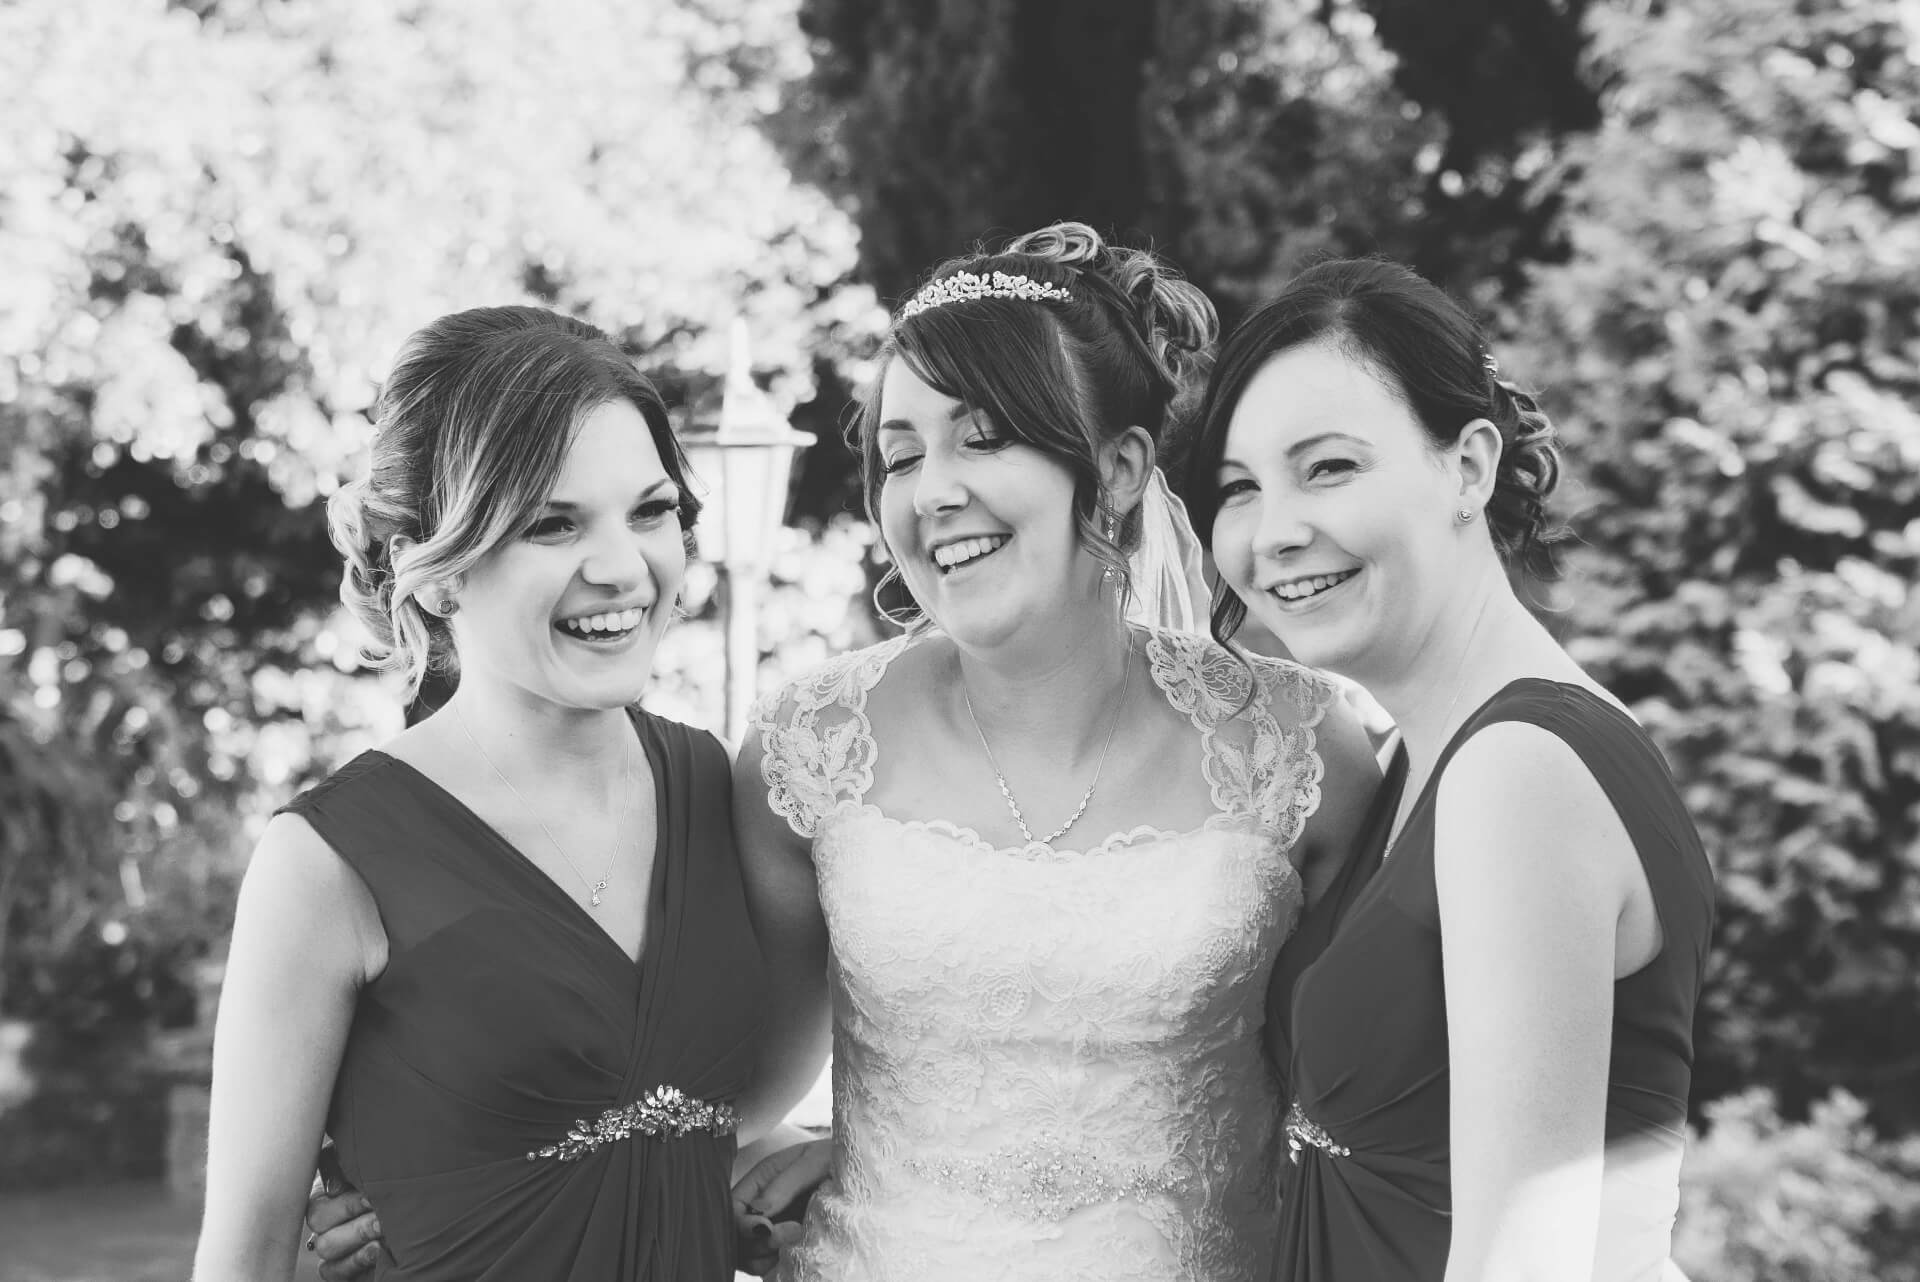 Bride and Bridesmaids laughing at Whaplode Manor Wedding Reception - Black and white wedding photo by Slice of Life Photography, Spalding